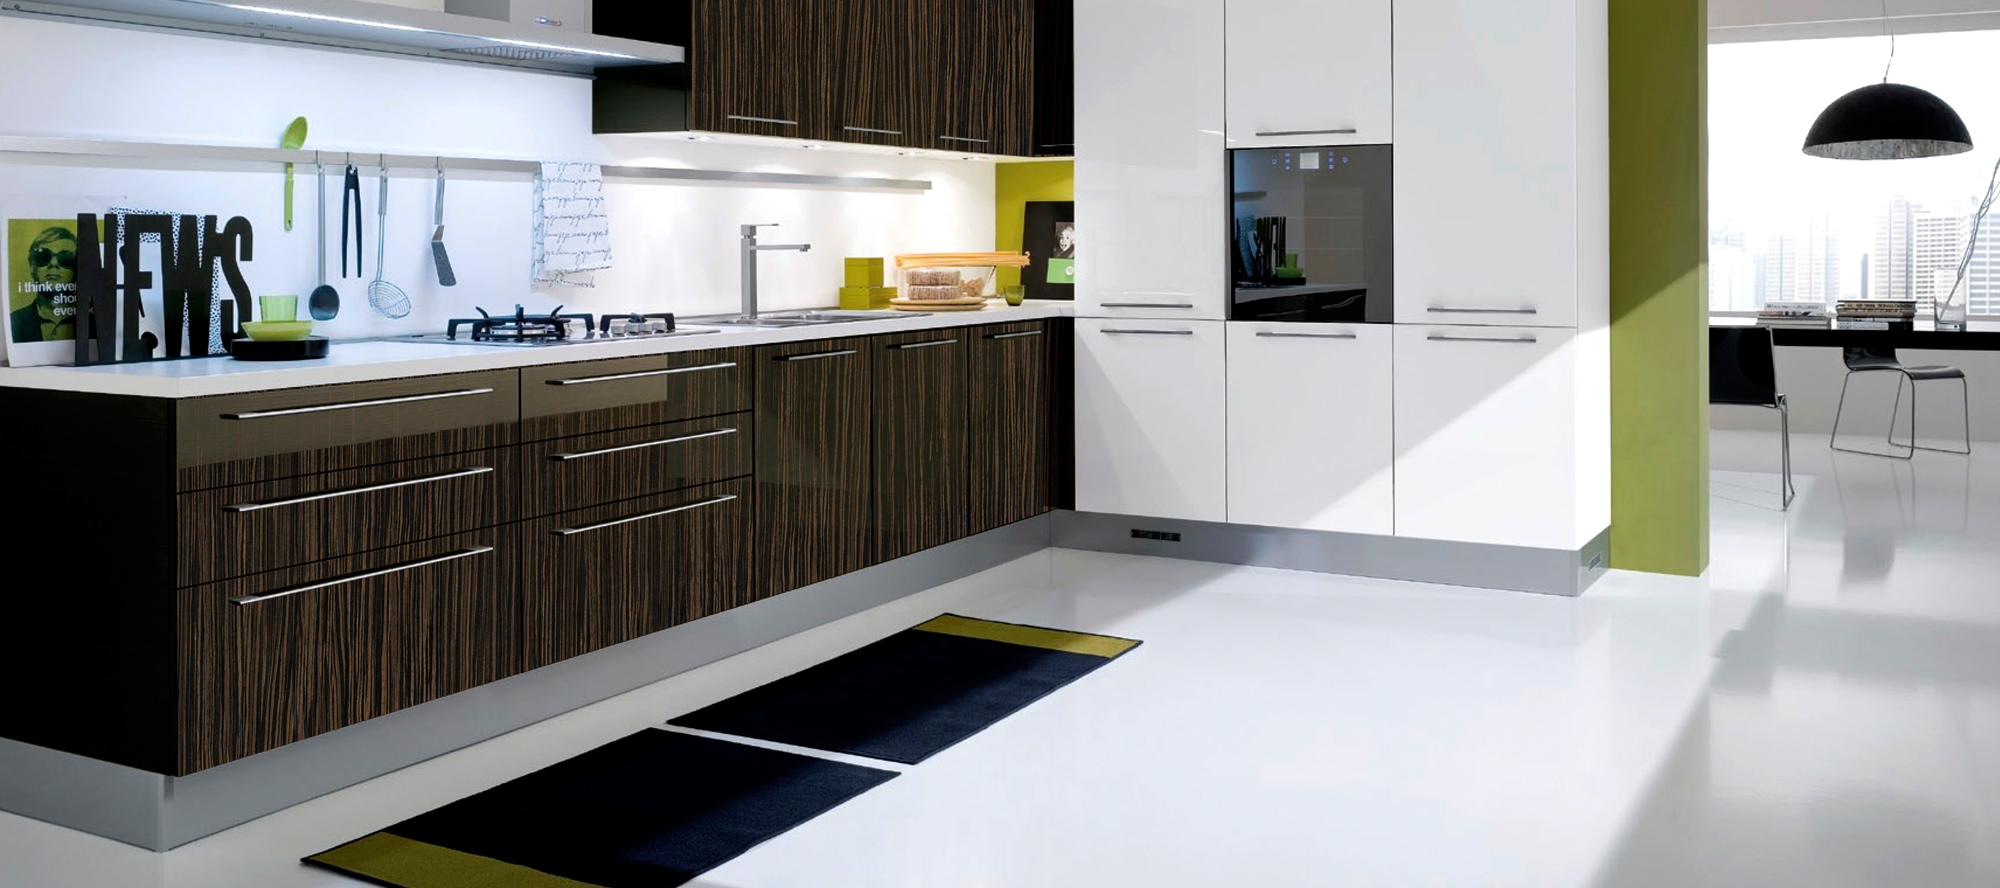 South Supreme In Digital Laminates For Kitchen-Sundek International